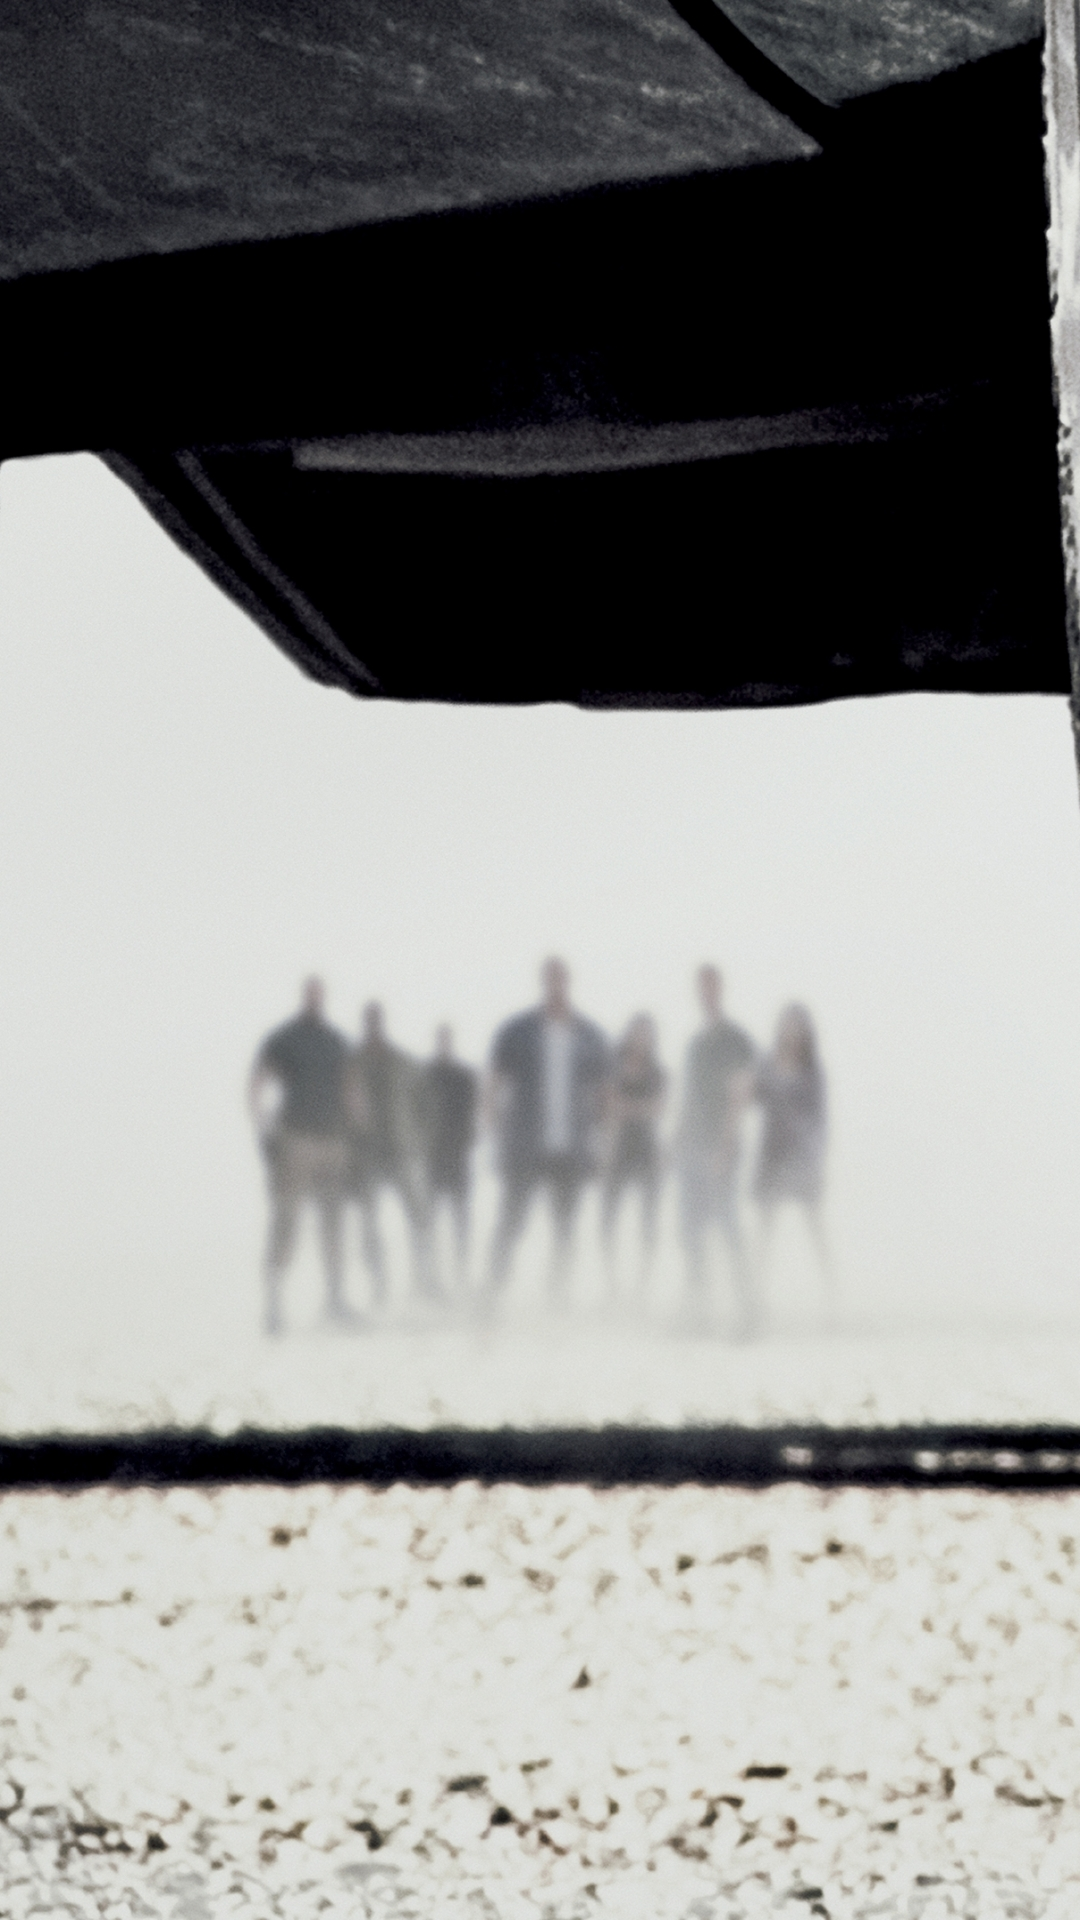 Movie Furious 7 1080x1920 Wallpaper Id 434343 Mobile Abyss